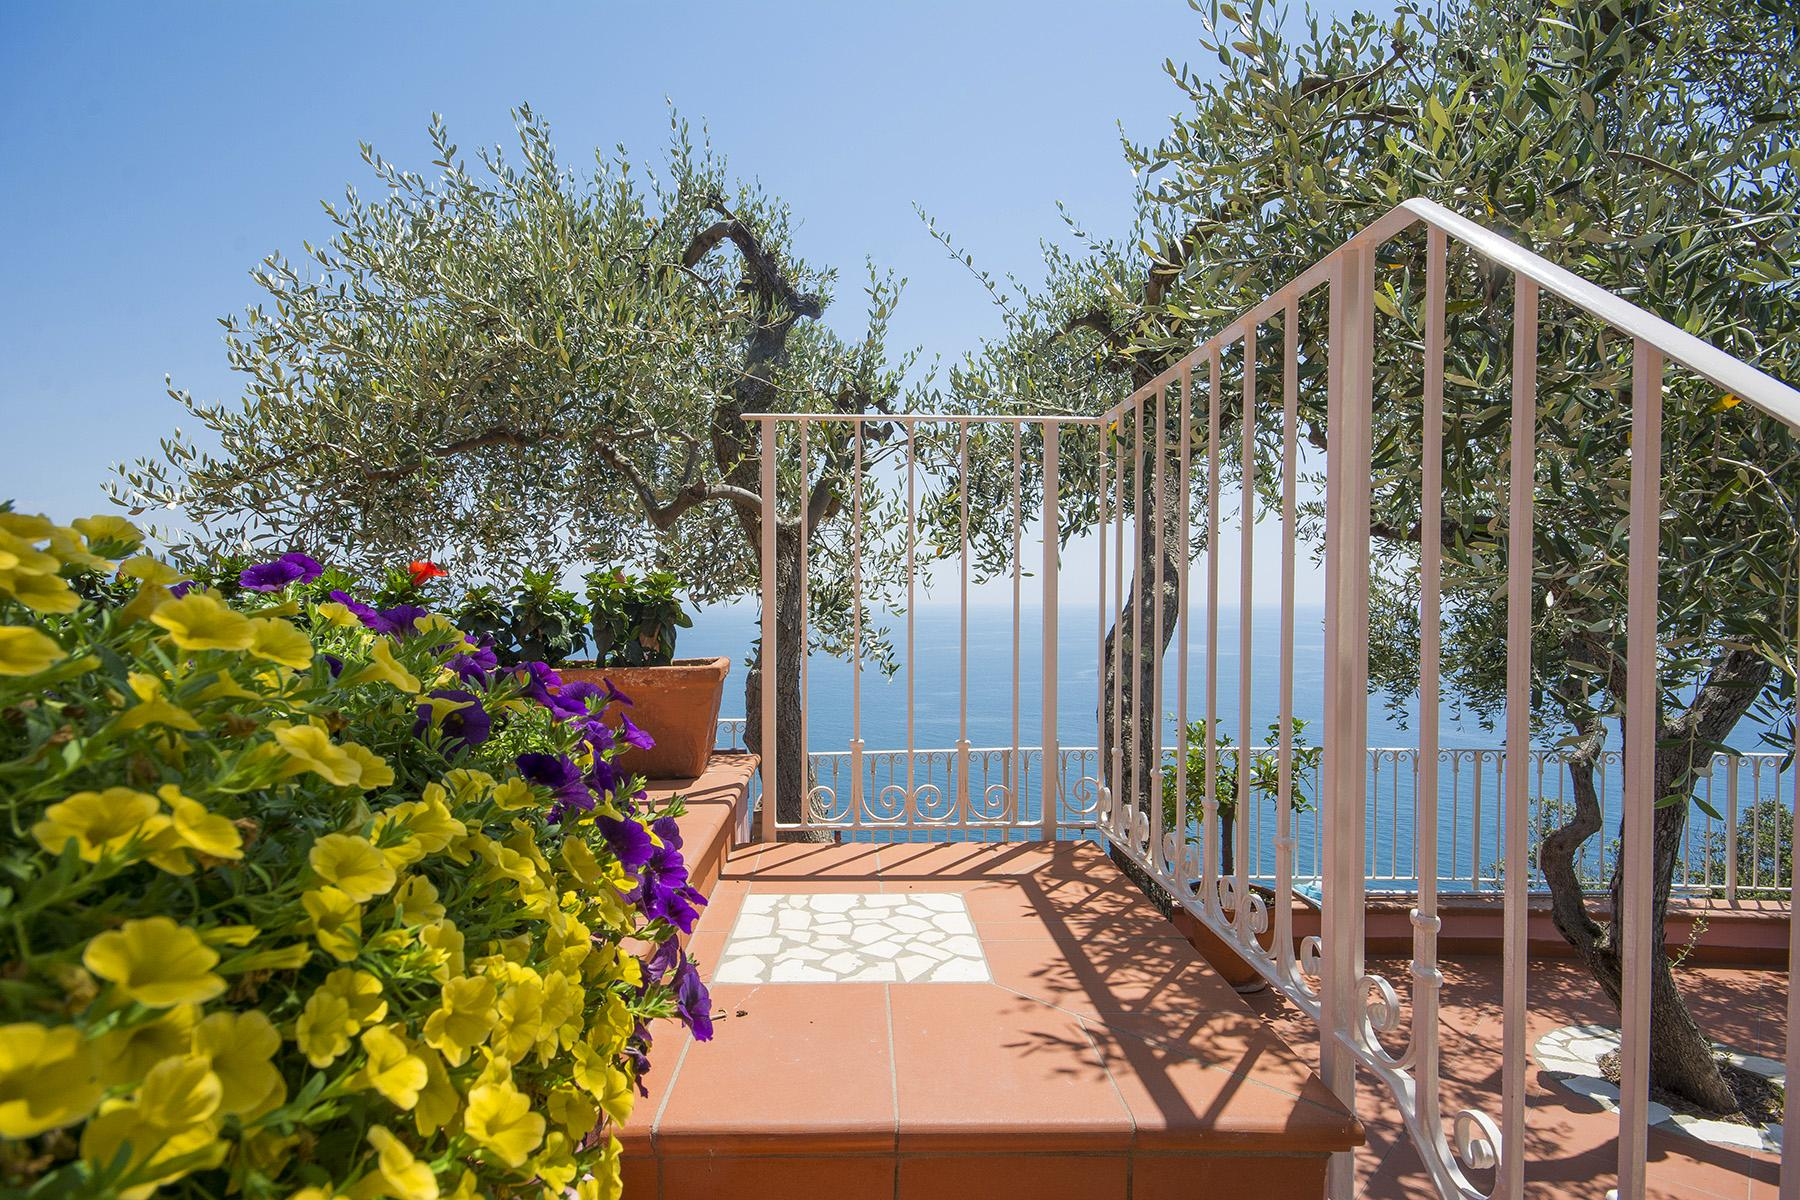 Charming luxury villa with swimming pool overlooking the Ligurian sea - 19